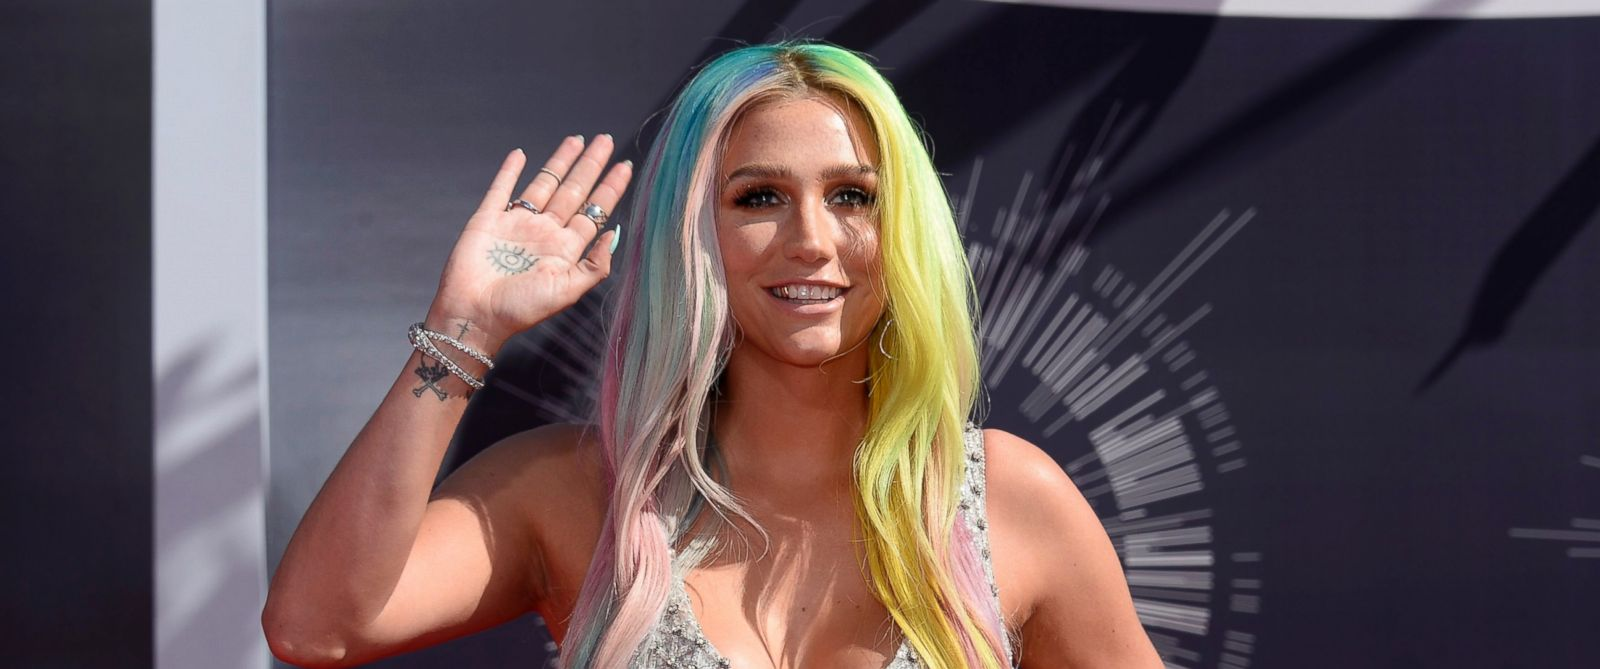 PHOTO: Kesha arrives at the 2014 MTV Music Video Awards in this file photo taken Aug. 24, 2014, in Inglewood, Calif.